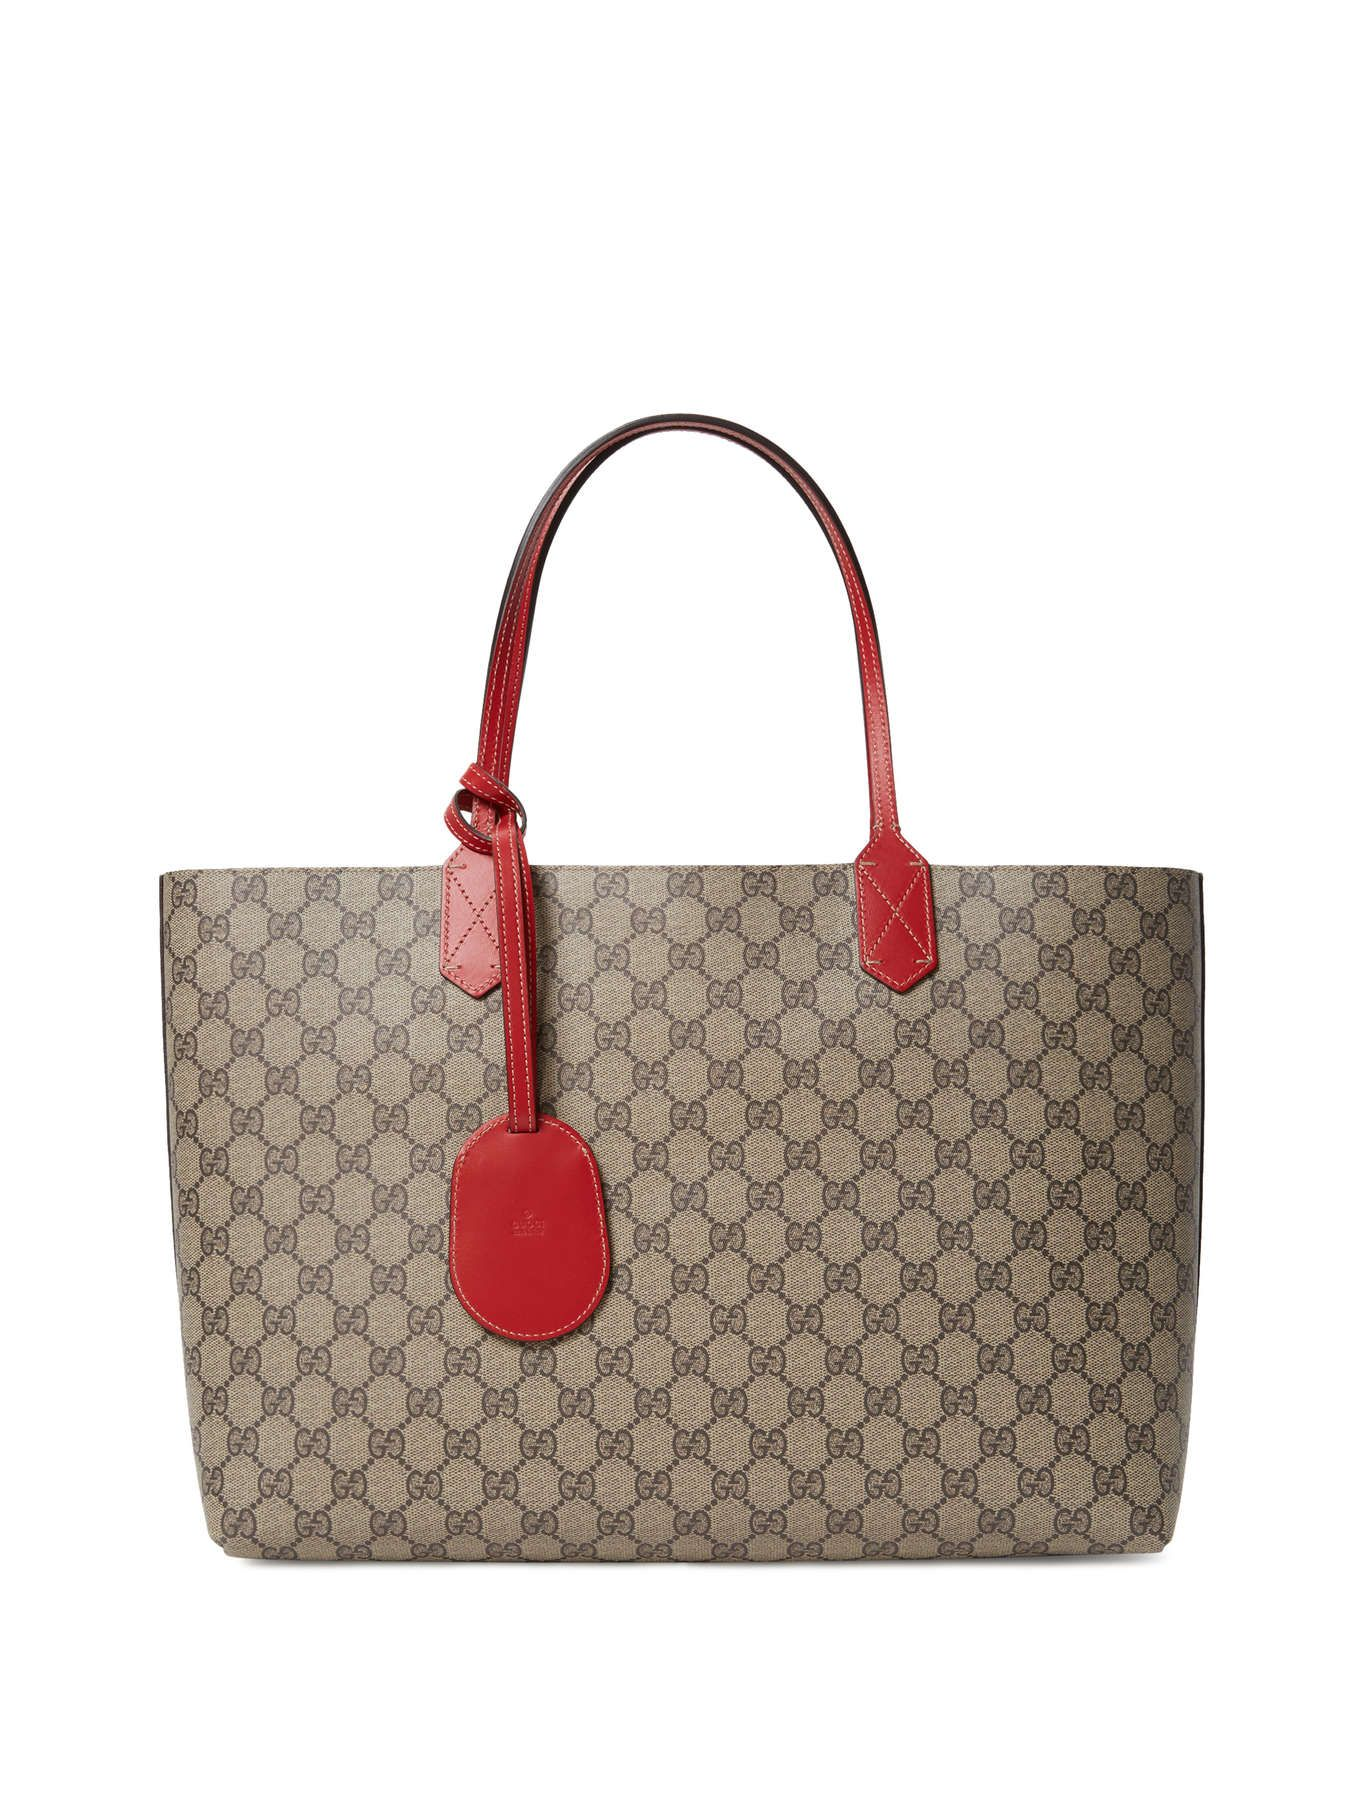 2be6082bbe8 Reversible GG Medium Leather Tote  Gucci  ReflectingTravel  Robinality. Gucci  AccessoriesClothing ...